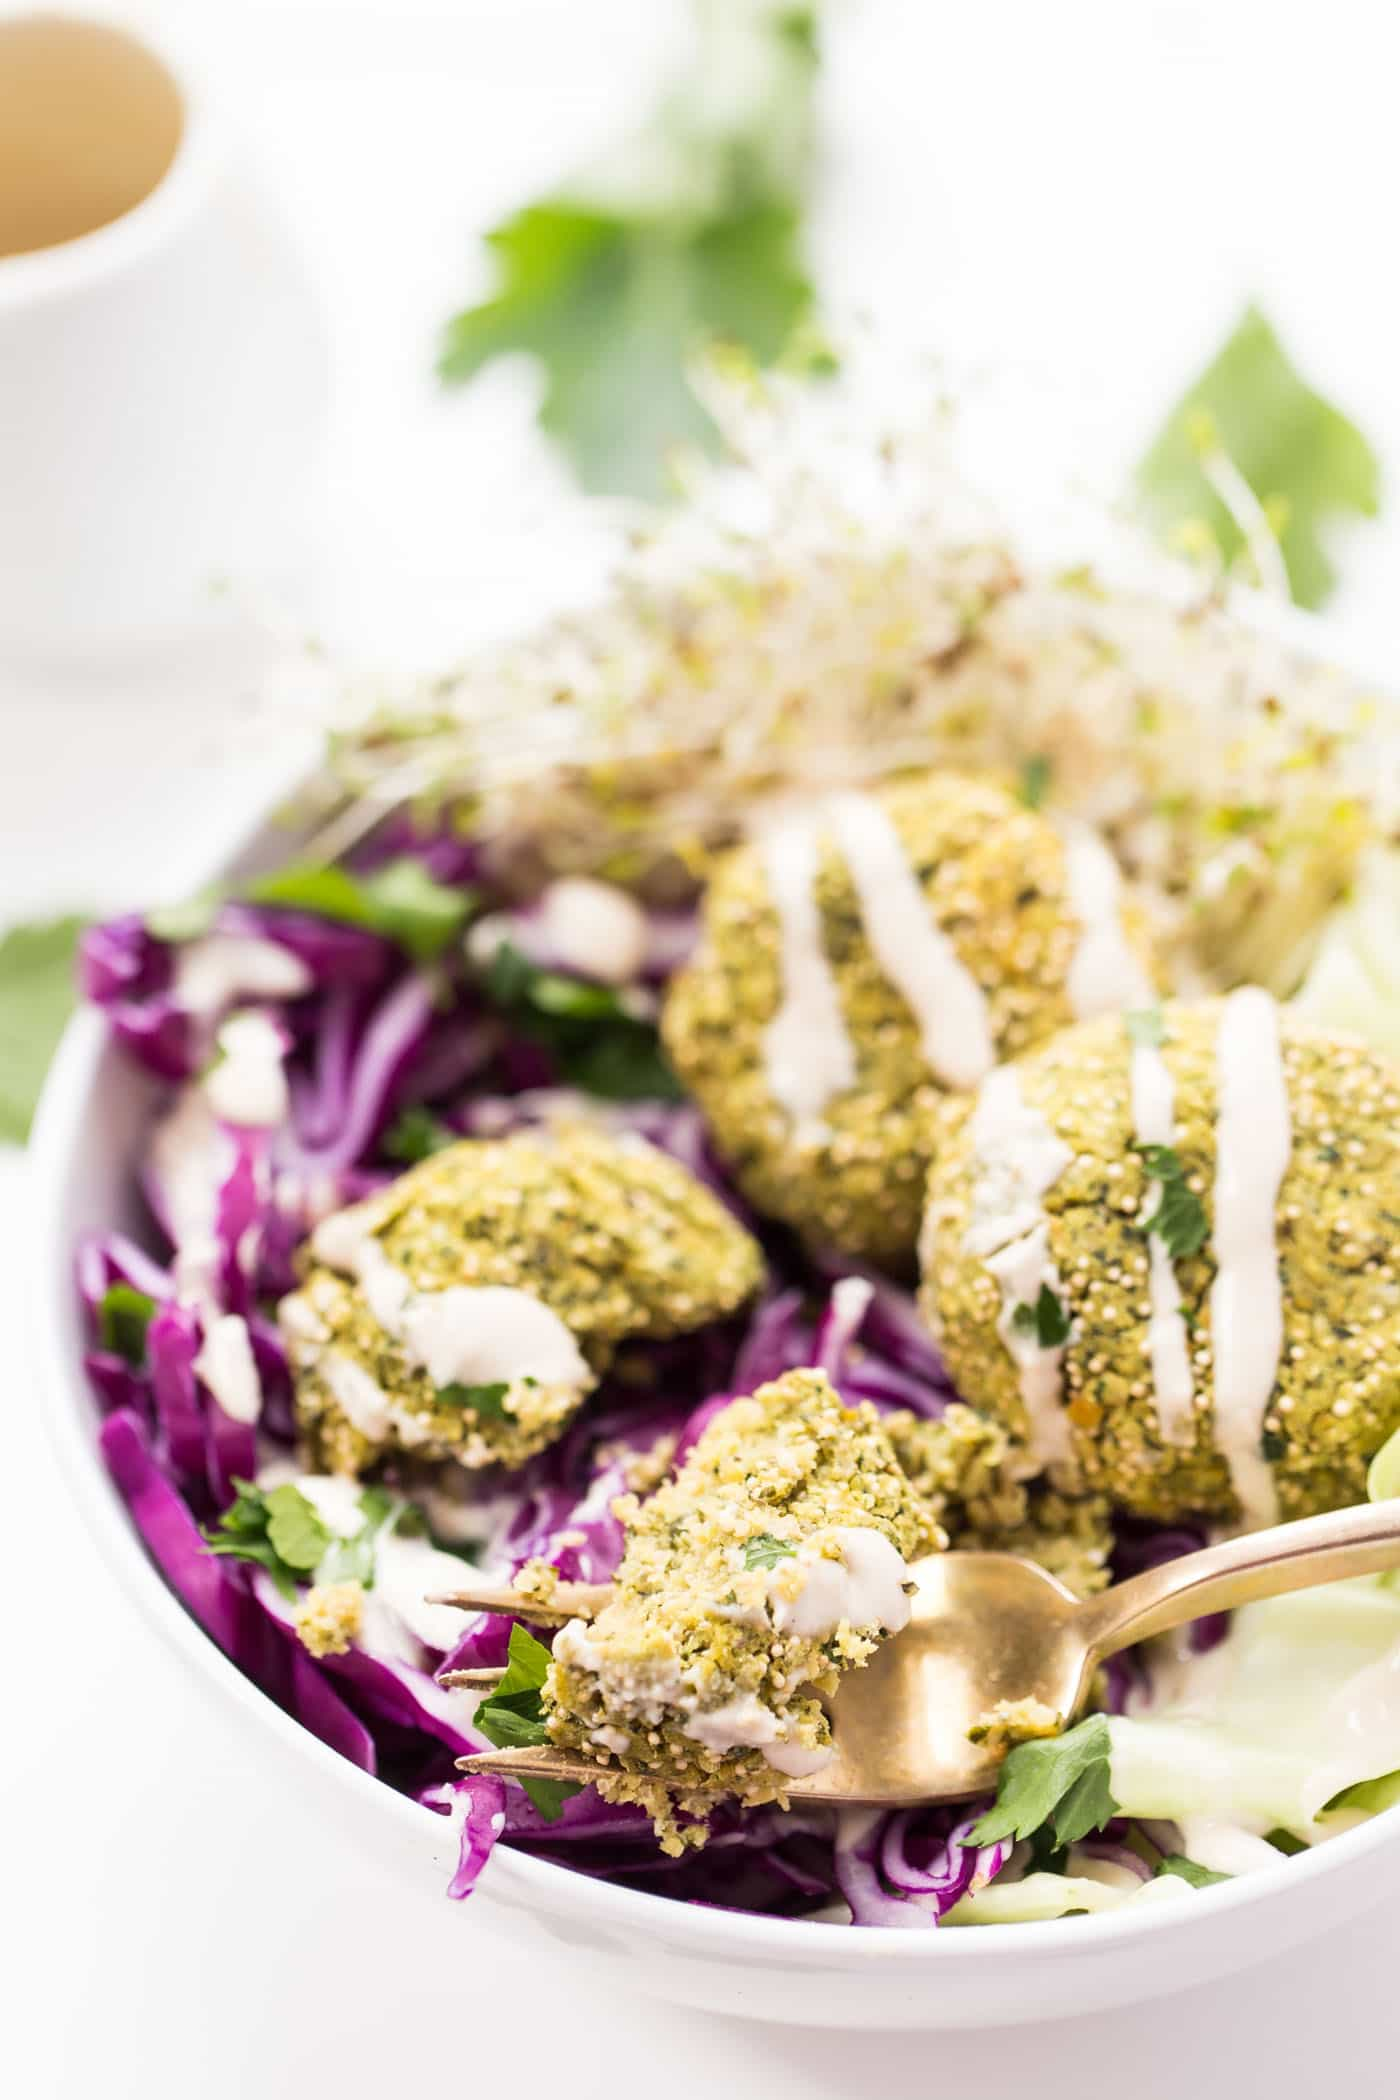 Baked instead of fried, this healthy vegan baked falafel combines protein-rich chickpeas with crunchy amaranth for a nutritious and delicious sandwich filling or topping to your salad!